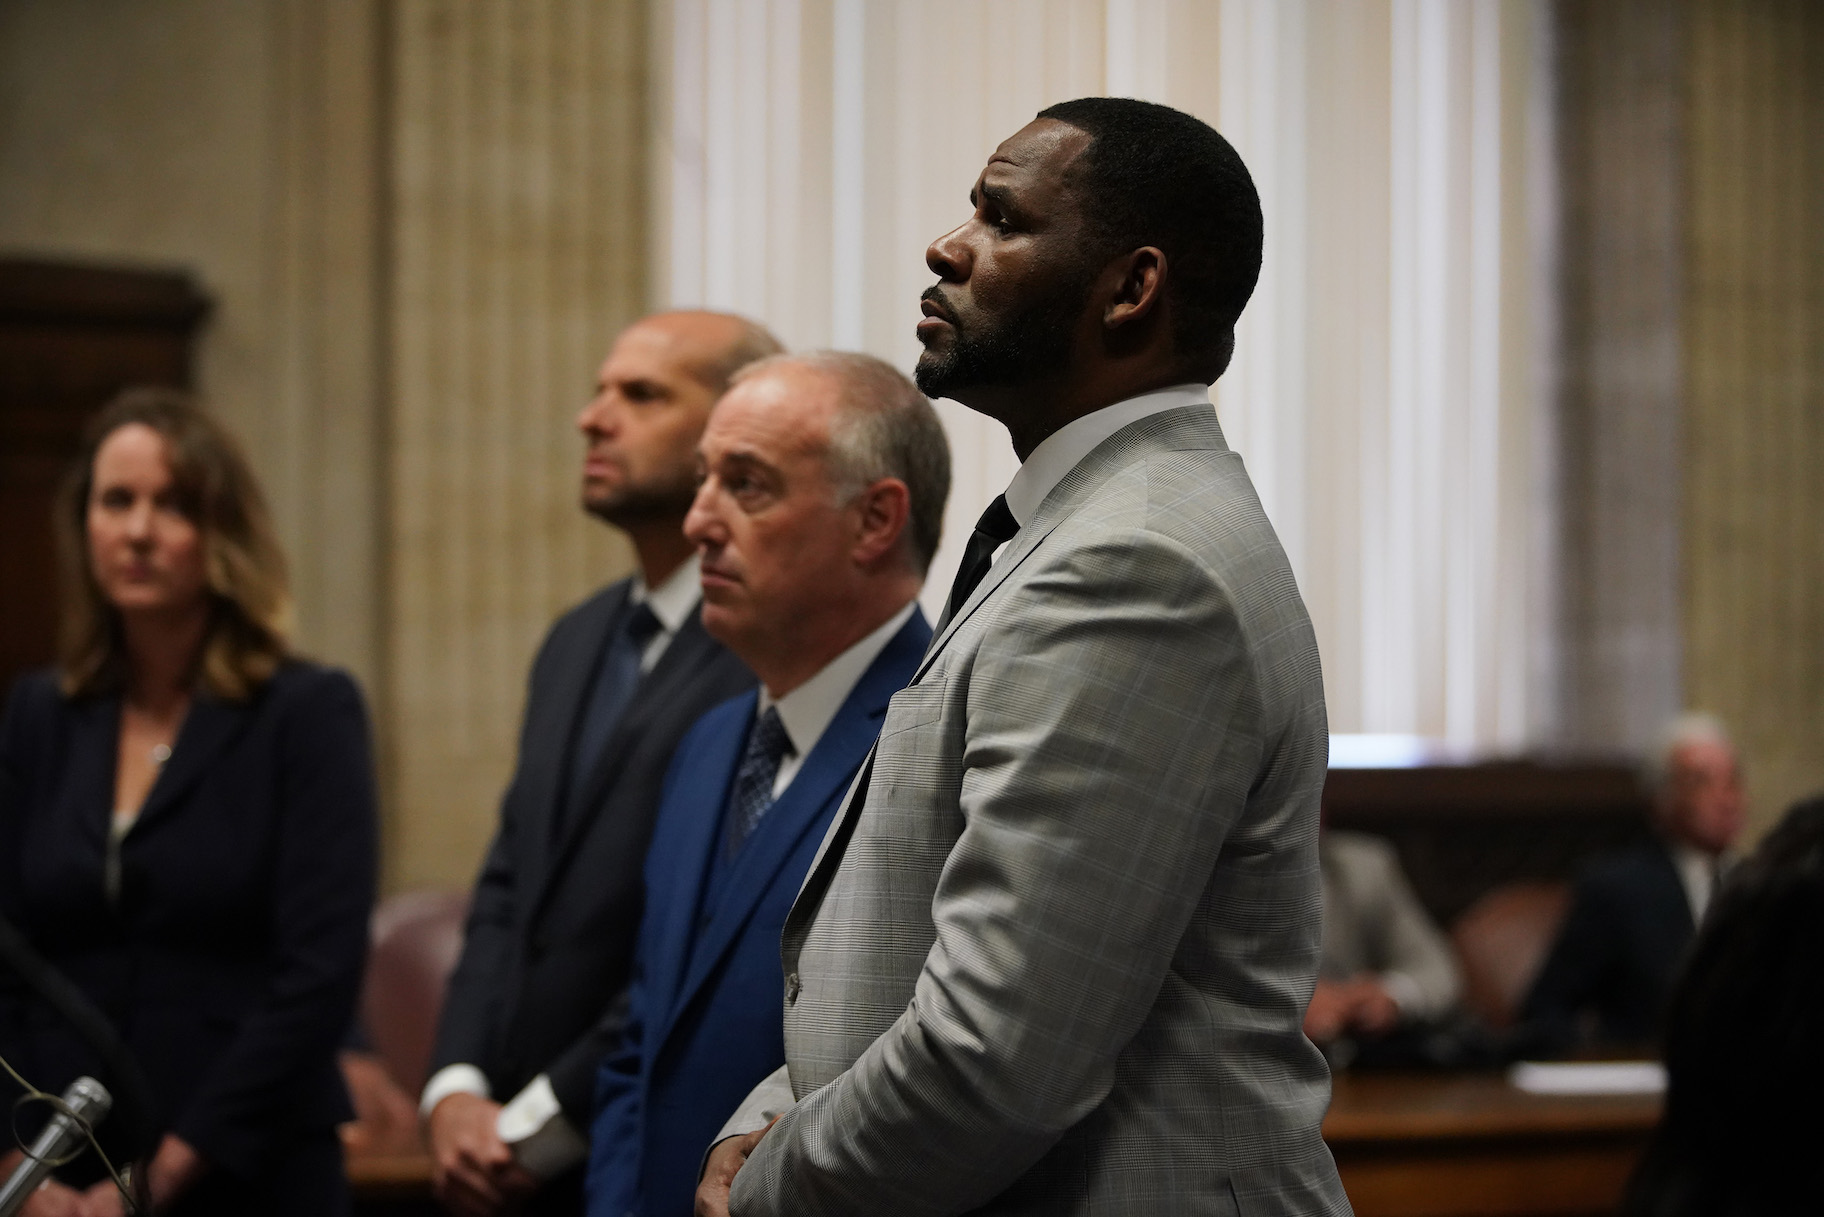 R. Kelly pleaded not guilty to a new indictment before Judge Lawrence Flood with his attorney Steve Greenberg at Leighton Criminal Court Building in Chicago, Thursday, June 6, 2019 (E. Jason Wambsgans/Chicago Tribune/Pool)